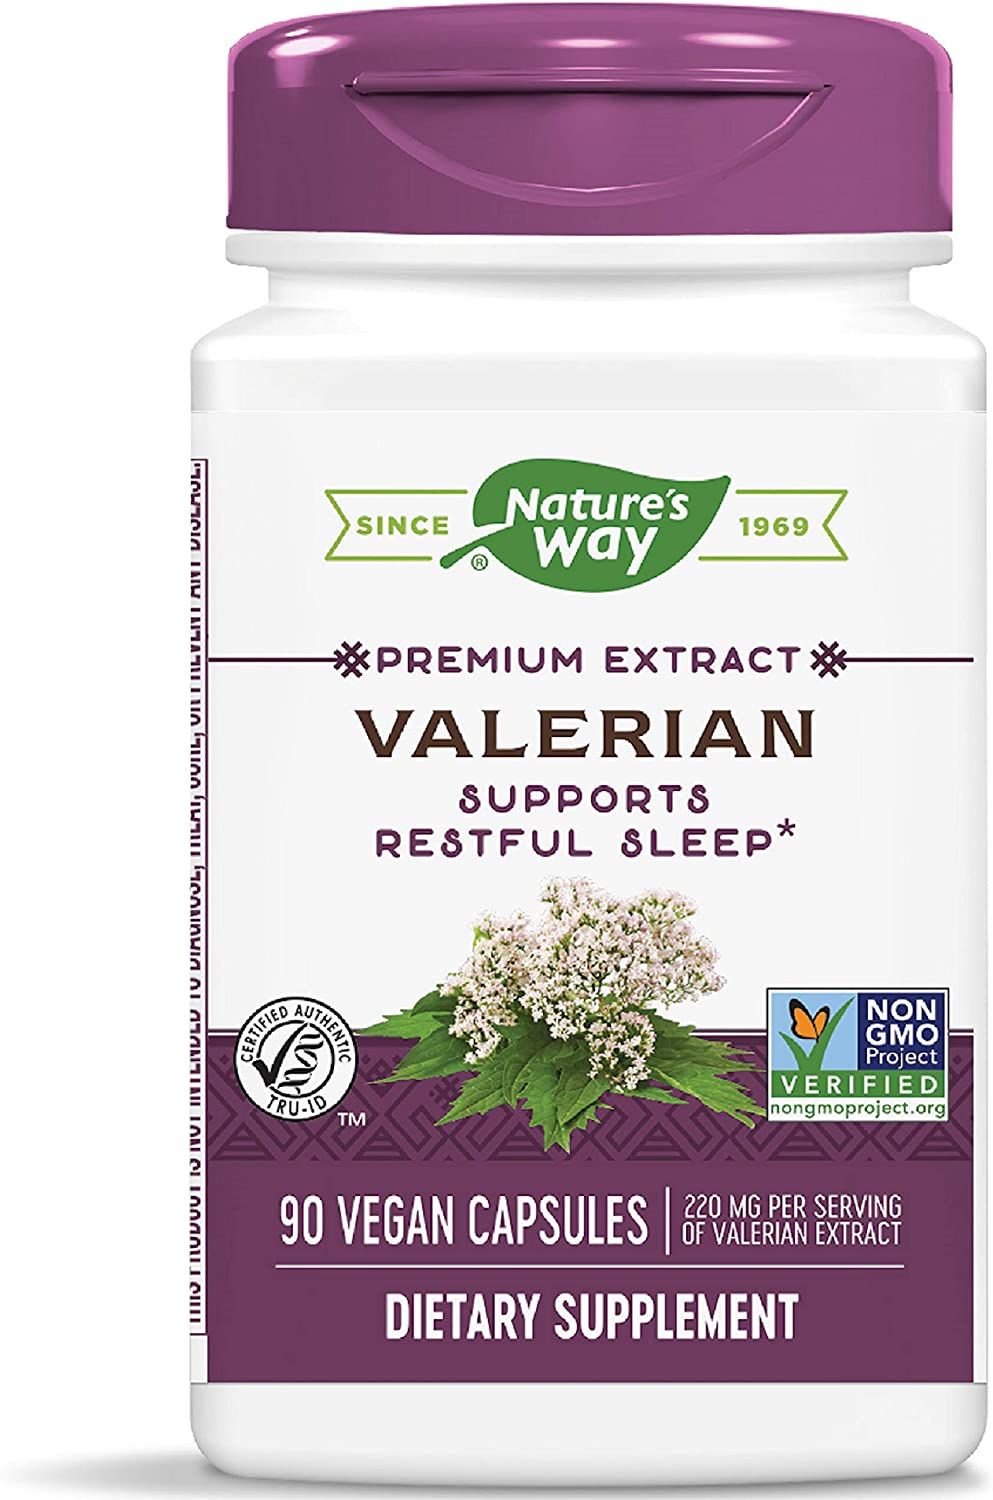 Nature's Way Valerian; 08% Valerenic Acids; Non-GMO Project Verified; Gluten Free; 220 mg of Extract per serving, 90 VCaps